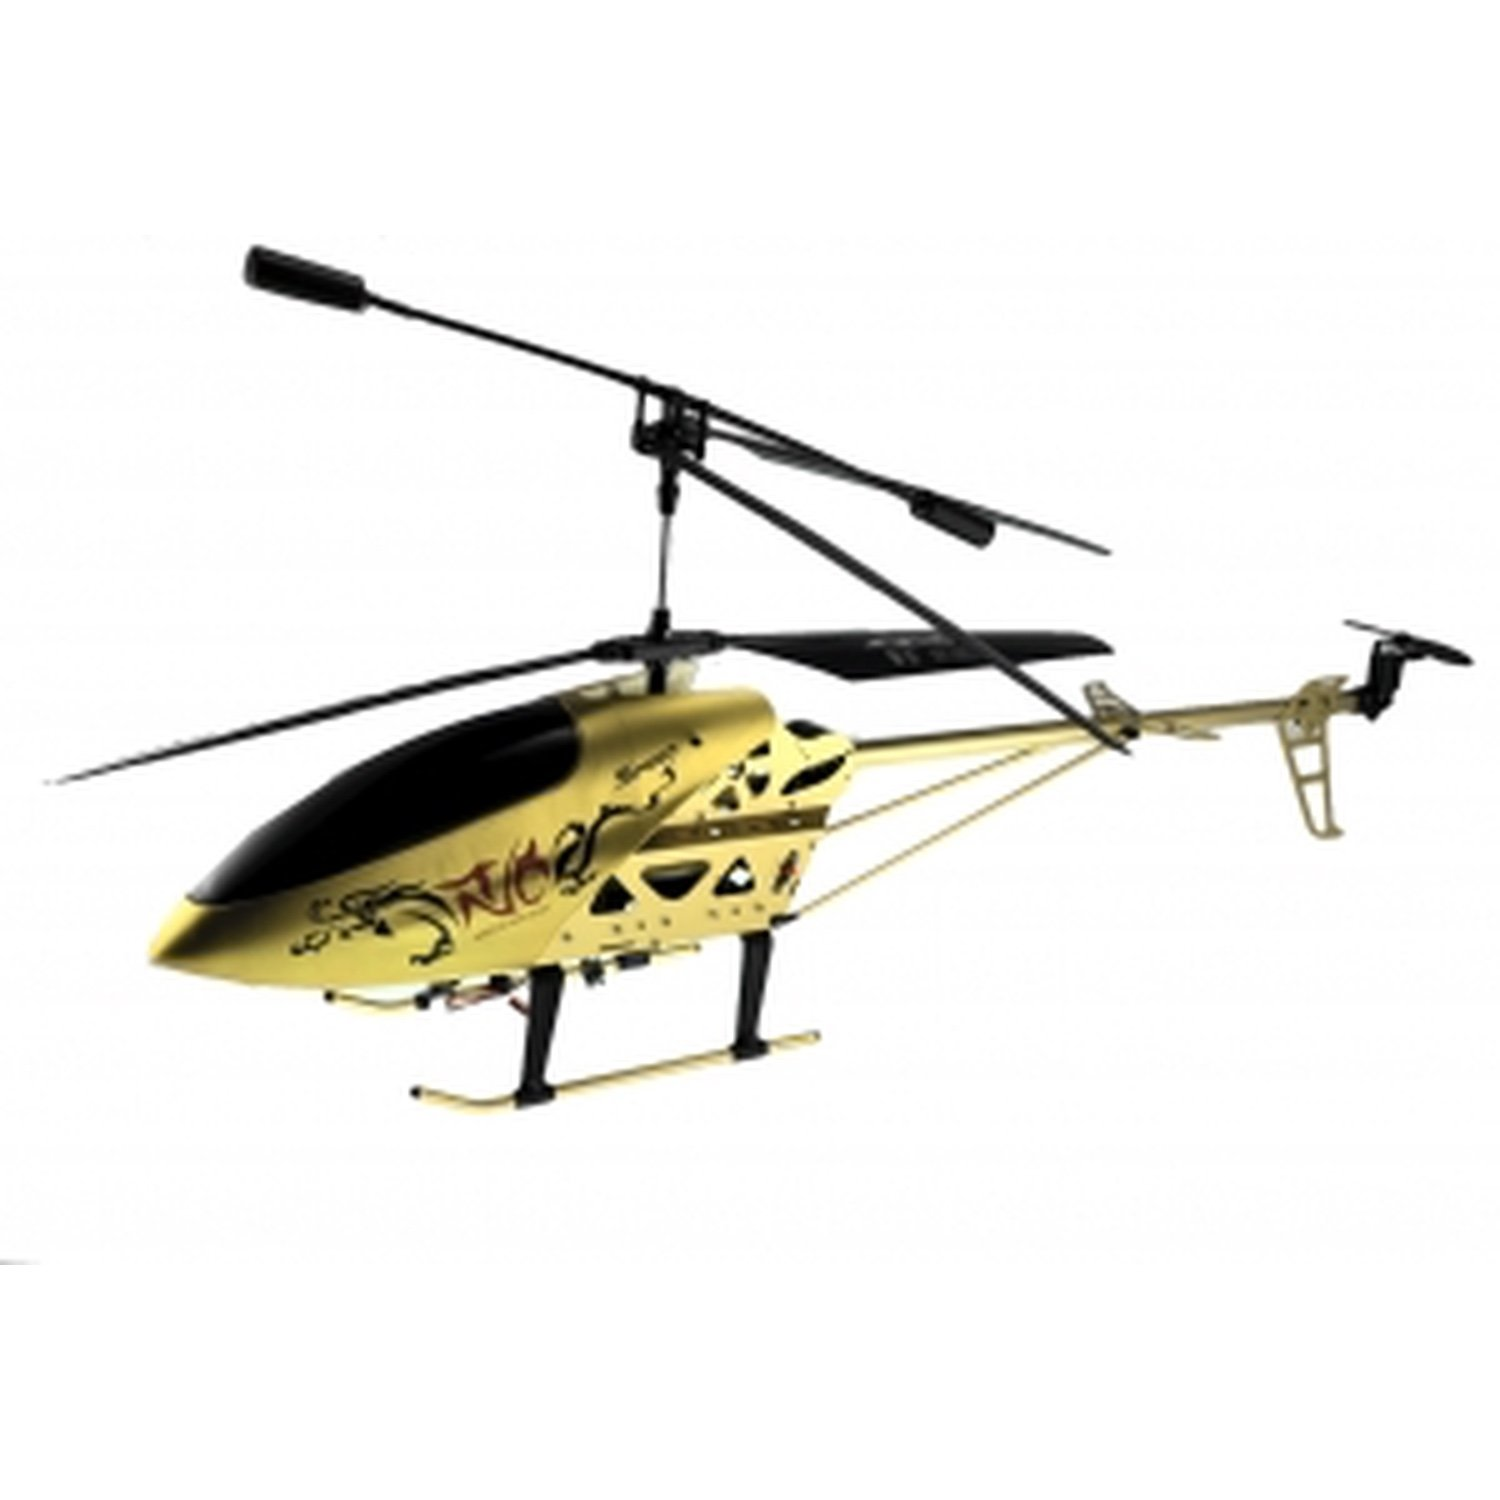 RC HELICOPTER MODEL LH-1202 (GOLD) 3.5 CHANEL, GYROSCOPE, METALLIC ALLOY